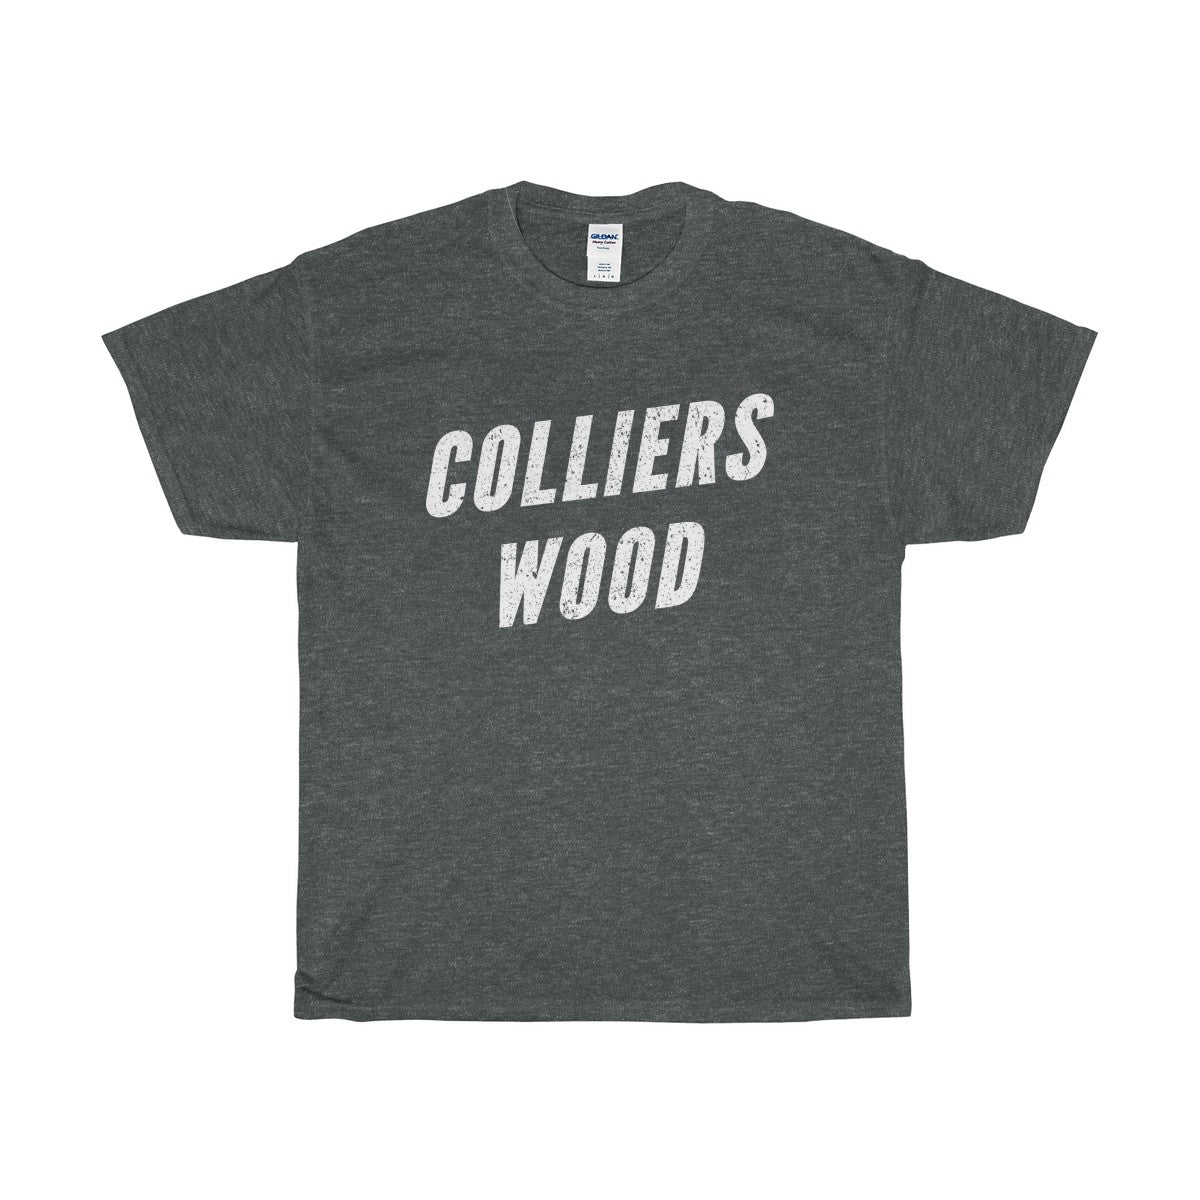 Colliers Wood T-Shirt